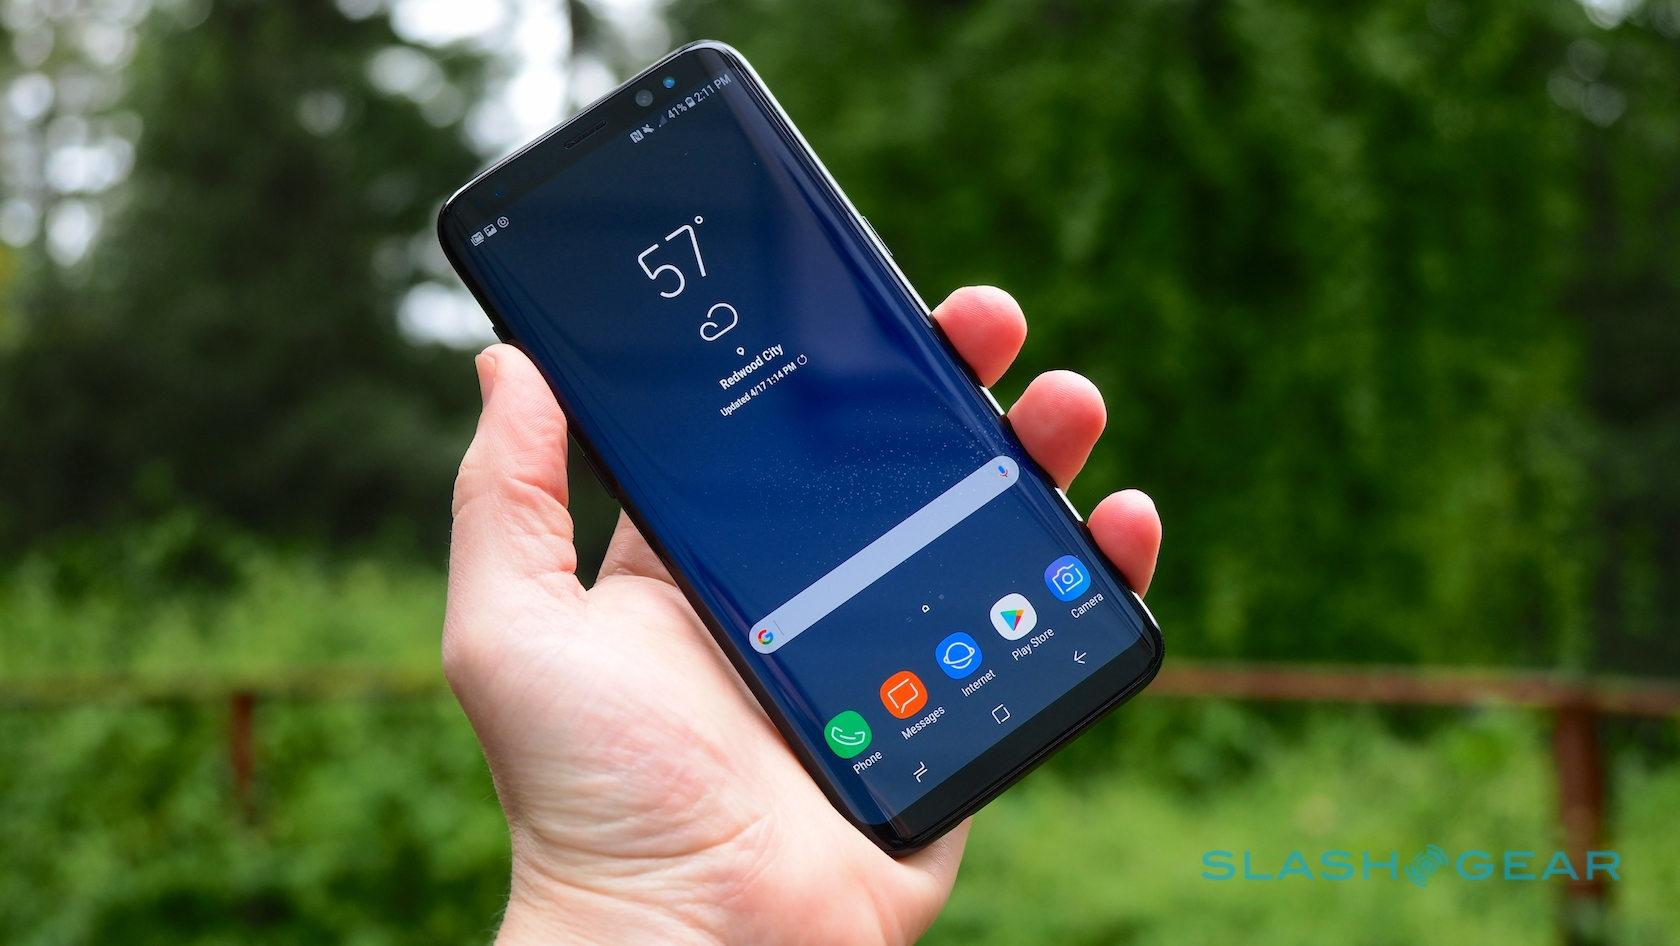 Samsung Galaxy S8 Review: On the shoulders of giants - SlashGear